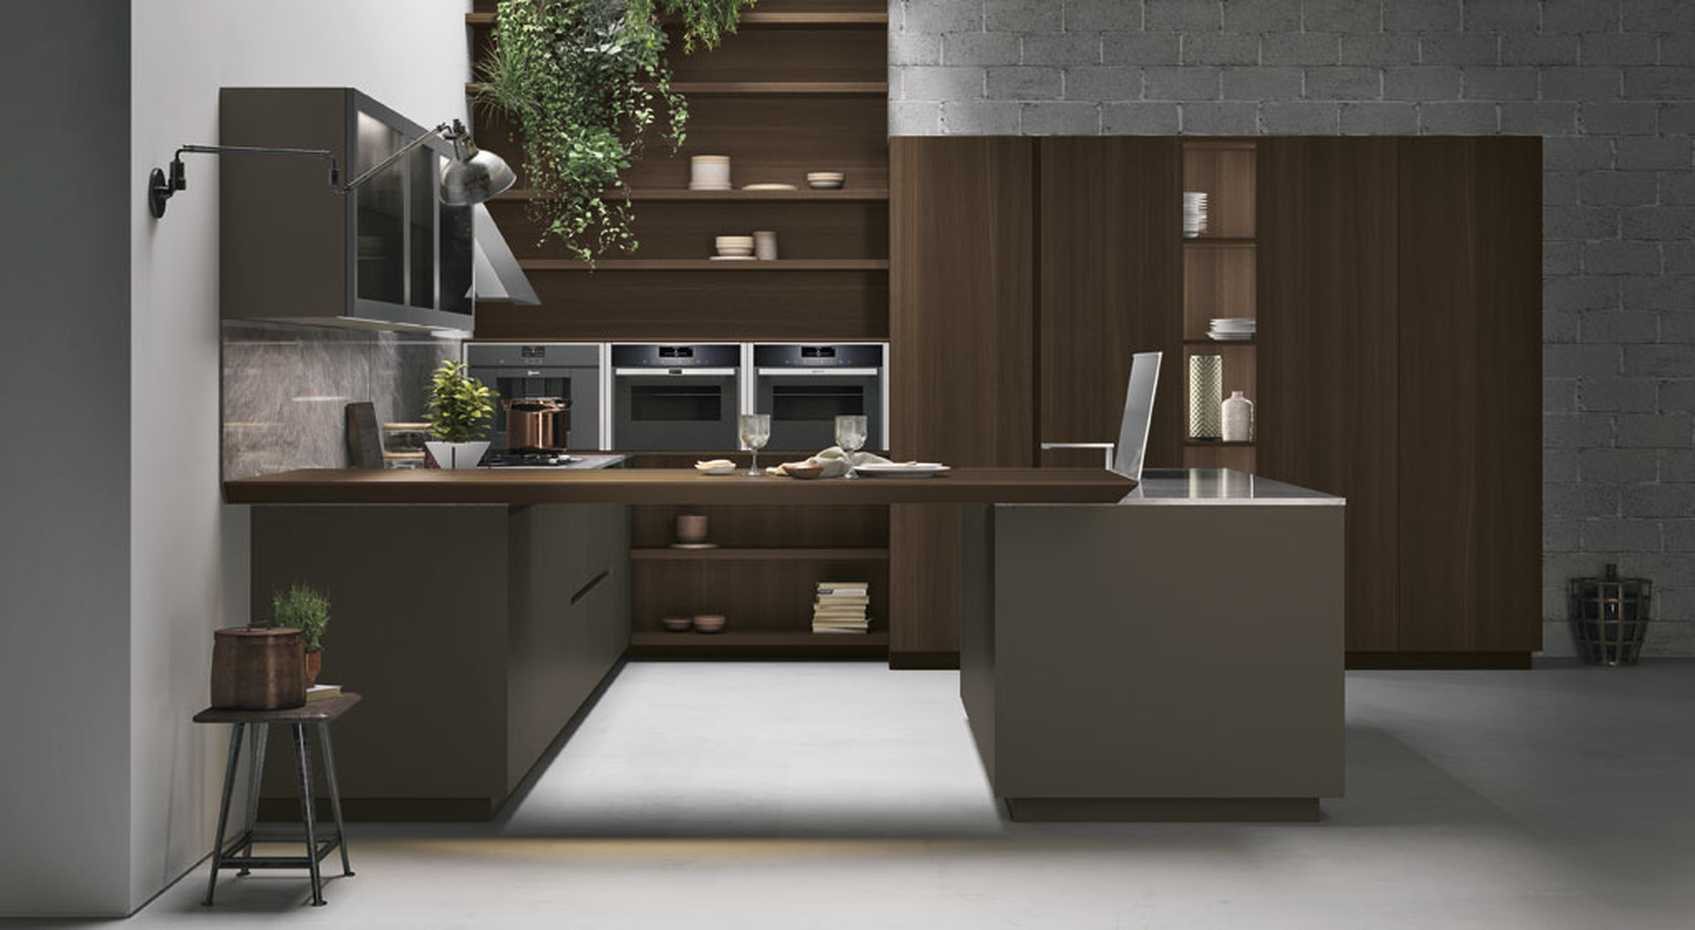 Style by Doimo Cucine product image 3